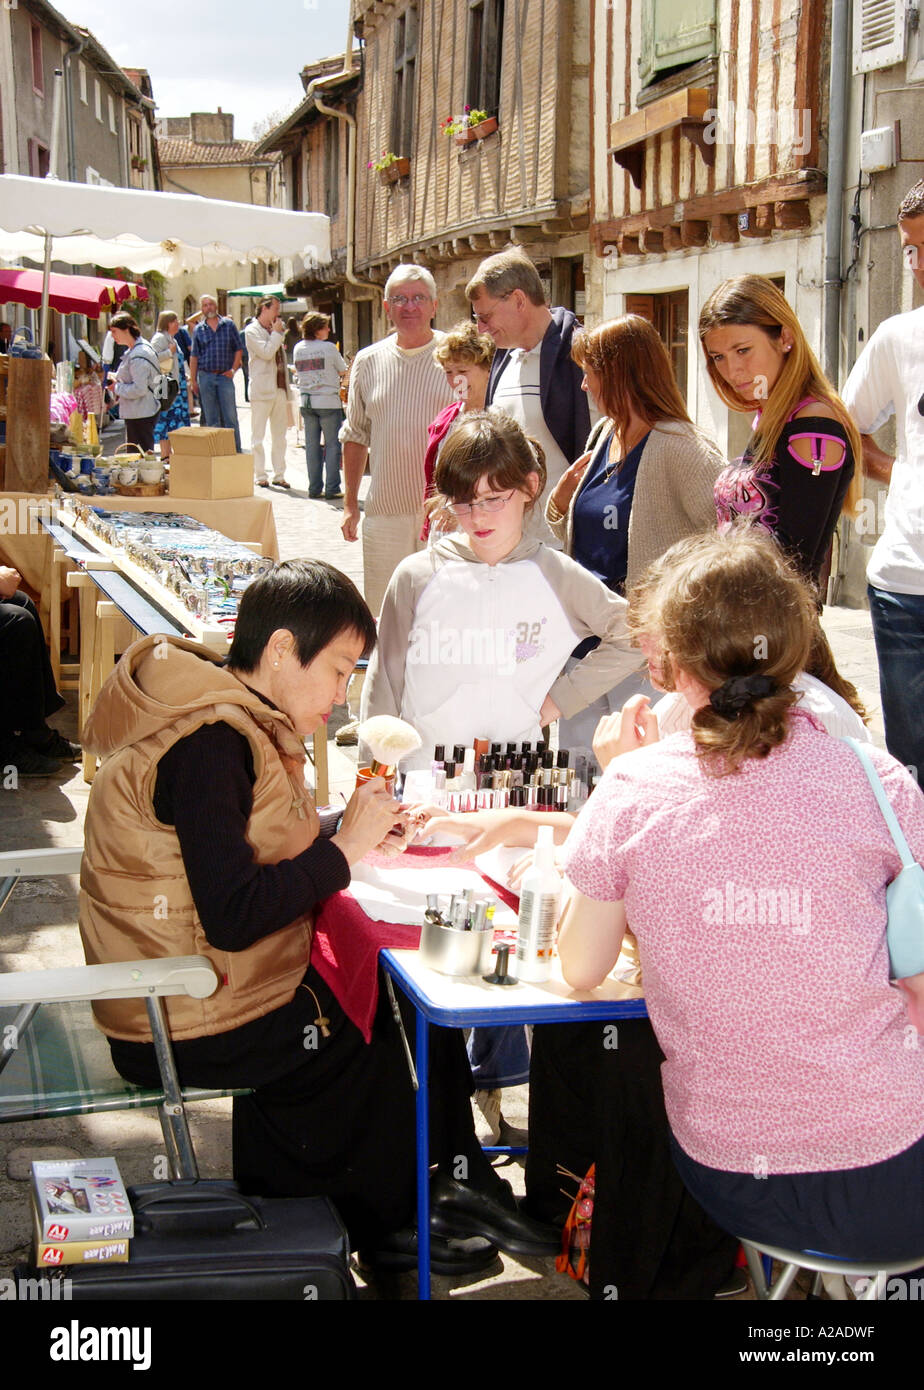 Fete in Parthenay, France - Stock Image